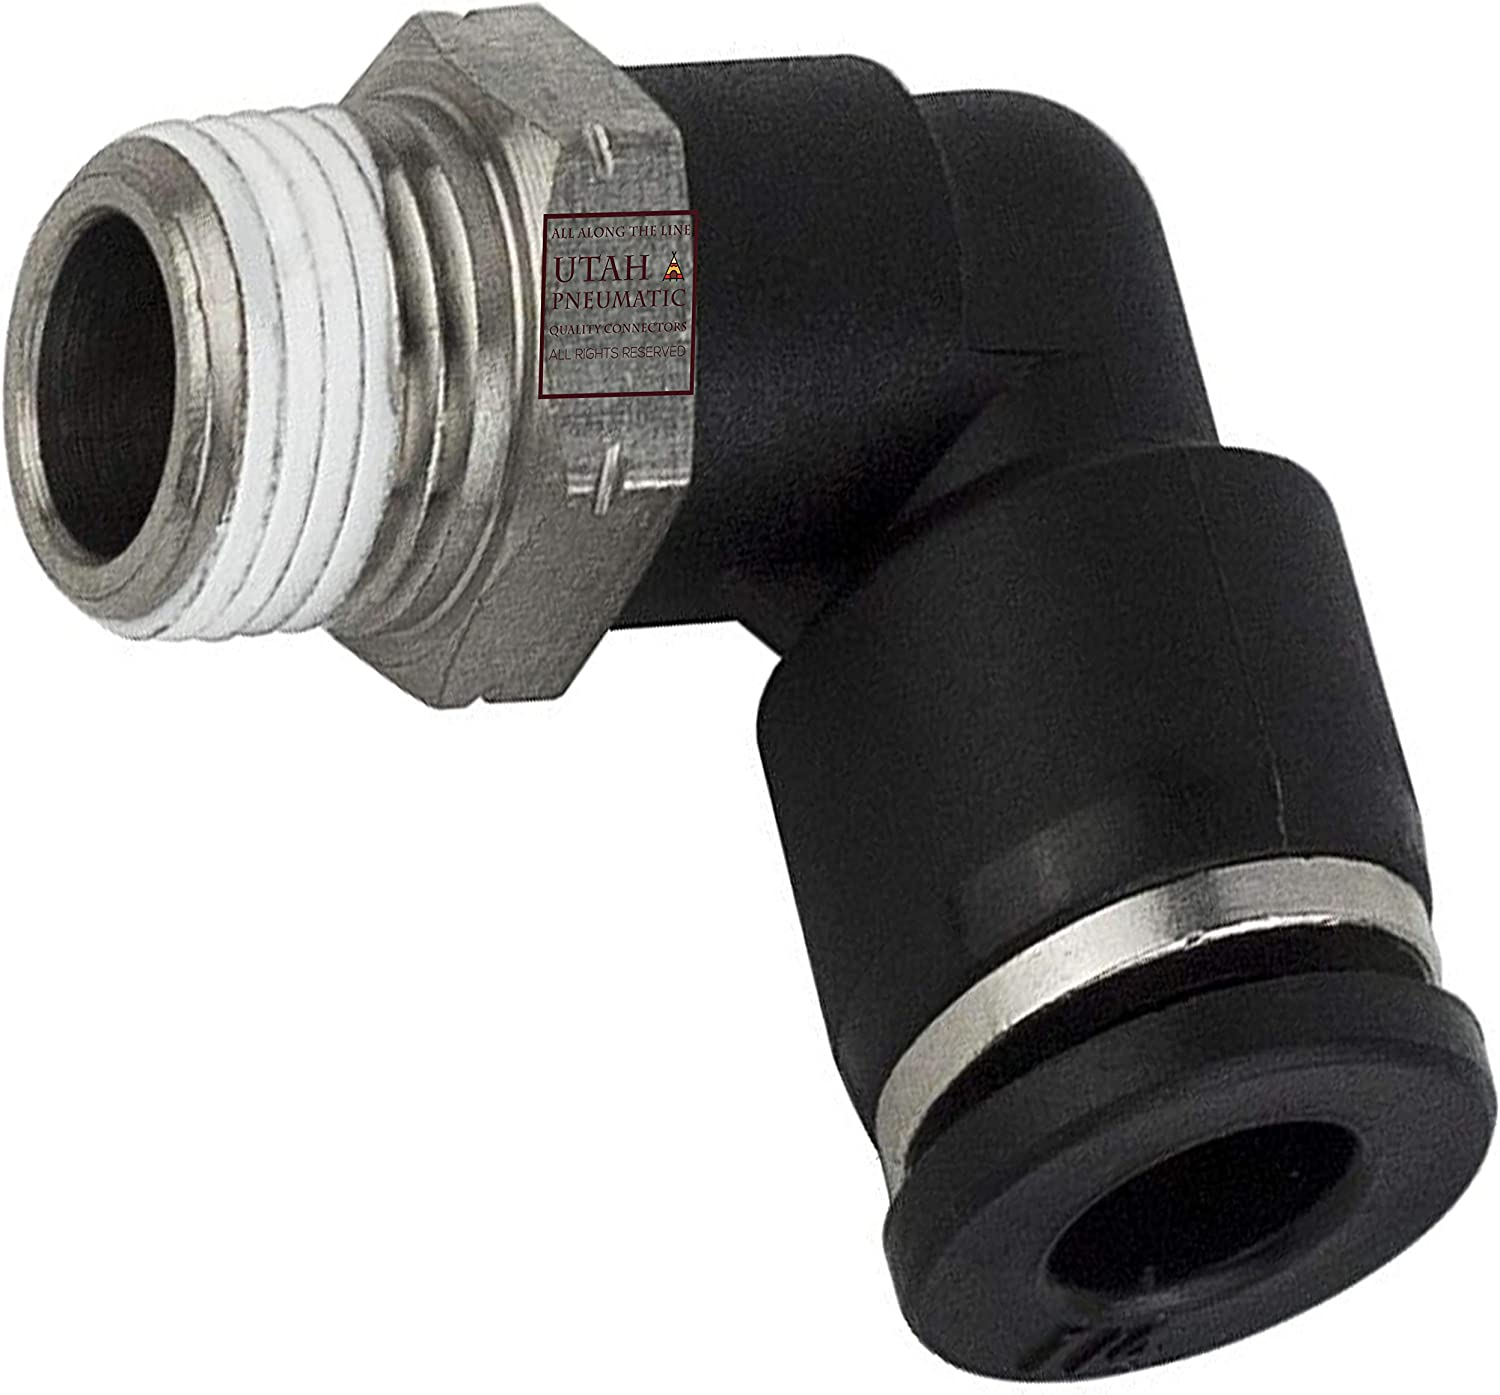 MacCan Pneumatic PL5//16-N2 Male Elbow 5//16 Tube OD x 1//4 NPT Thread Push to Connect Fittings Pack of 10